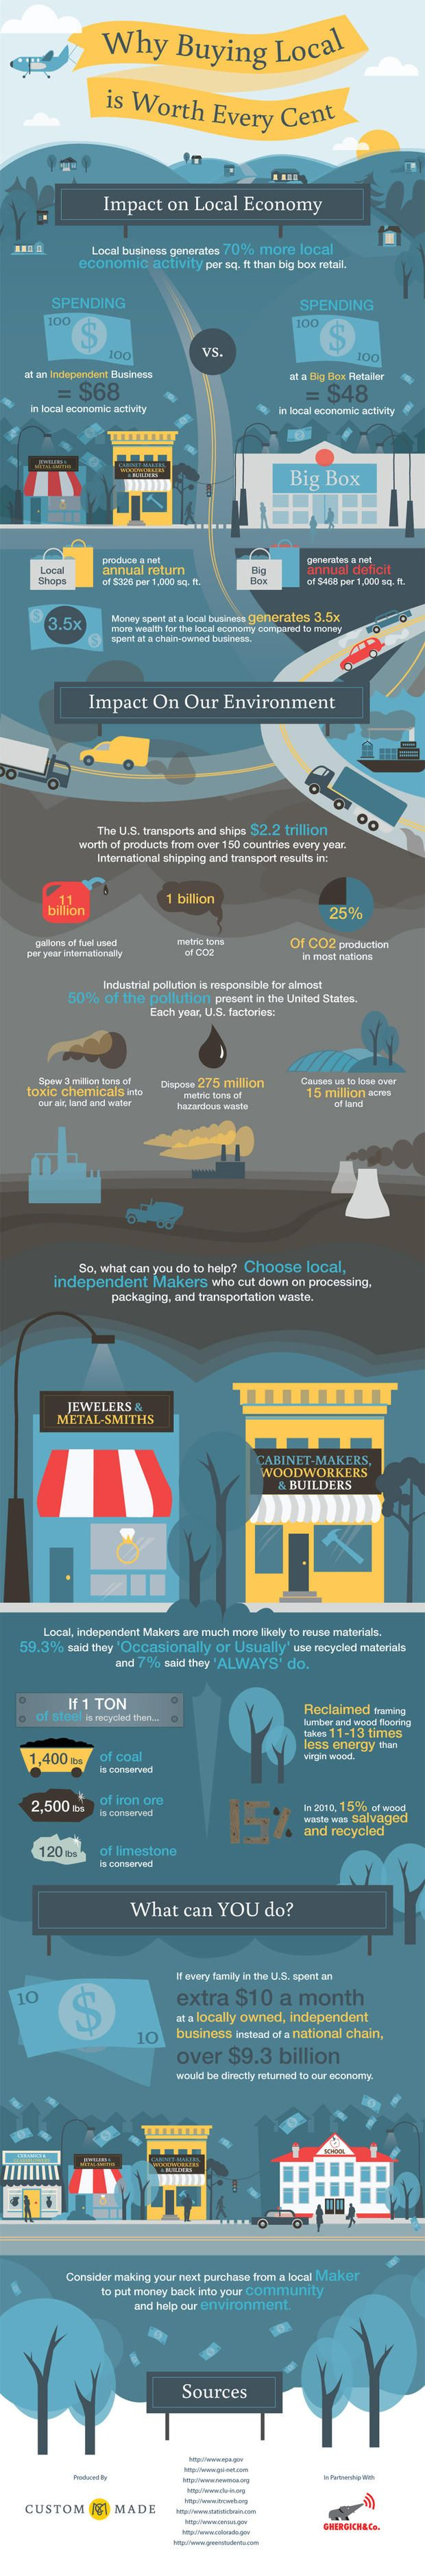 Wish this infographic mentioned that a lot of local/independent businesses call historic Main Street neighborhoods home - so in addition to all the other good they do, they're also supporting #preservation.Green Home, Benefits Of, Farmers Market, Cities, Small Business, Buy Local, Local Purcha, Infographic, Shops Local